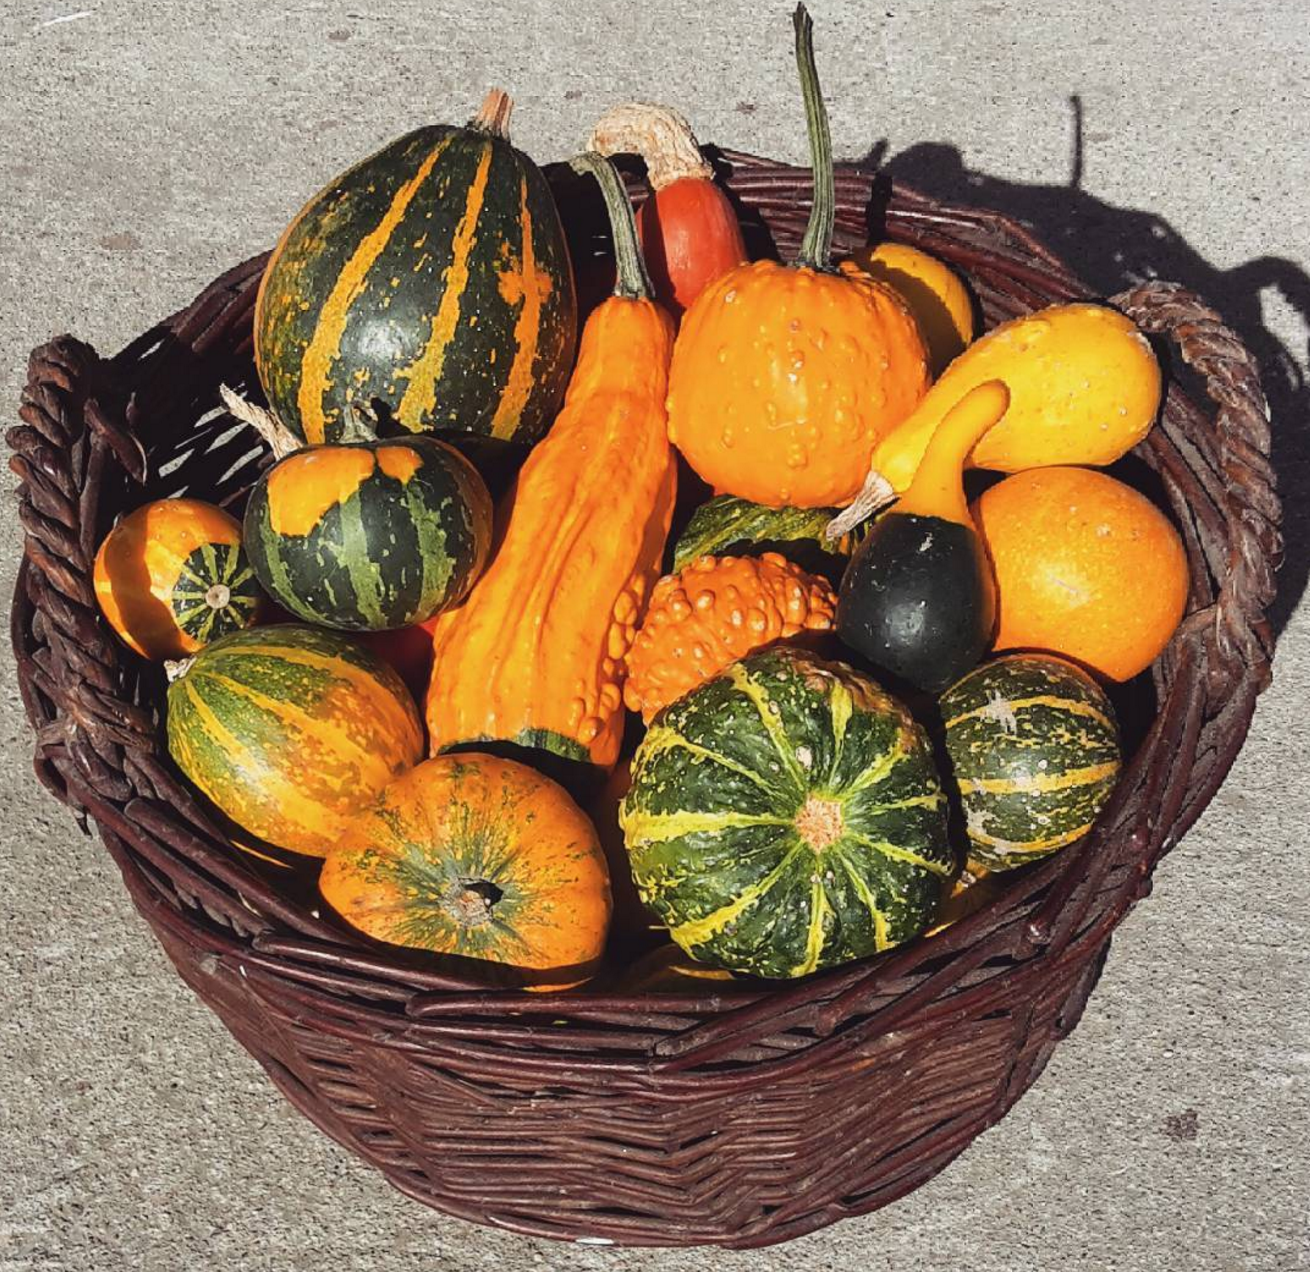 These Are The Best-Ever Pumpkin Recipes, According To Pinterest